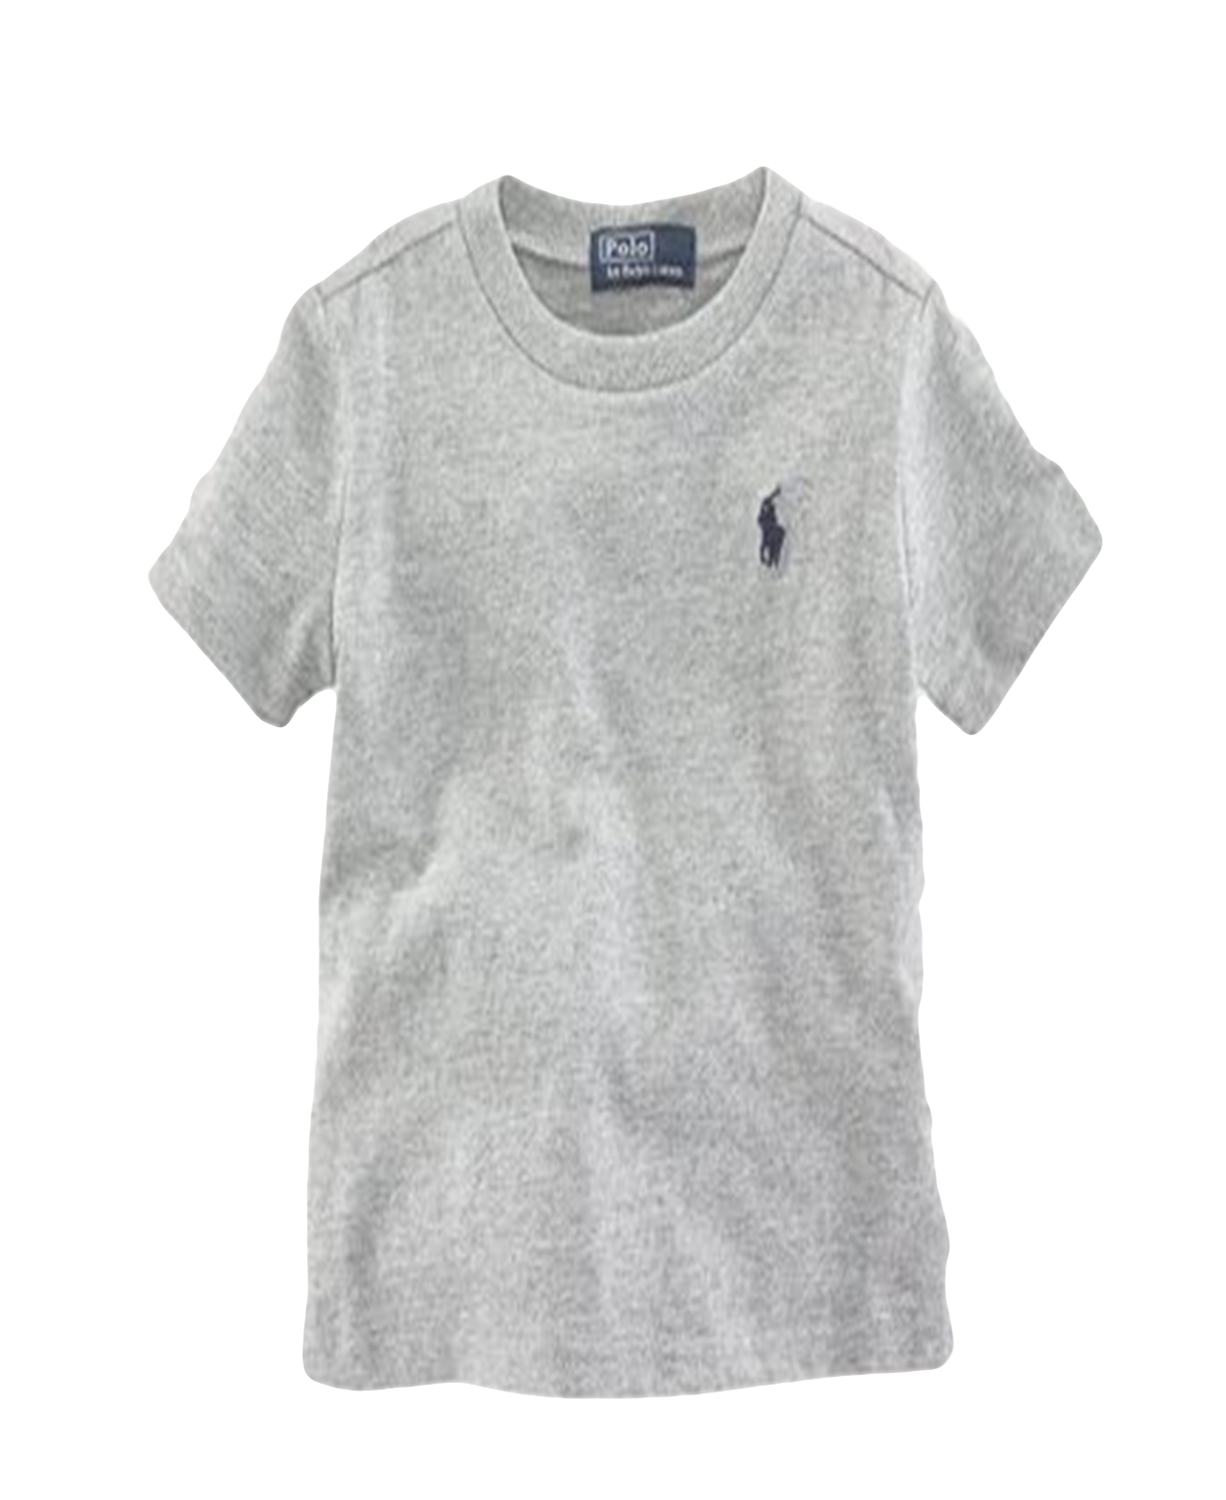 Stylish Baby Clothes - Cute Ralph Lauren Polo Baby t-shirt - Baby ... e8a162c612abf